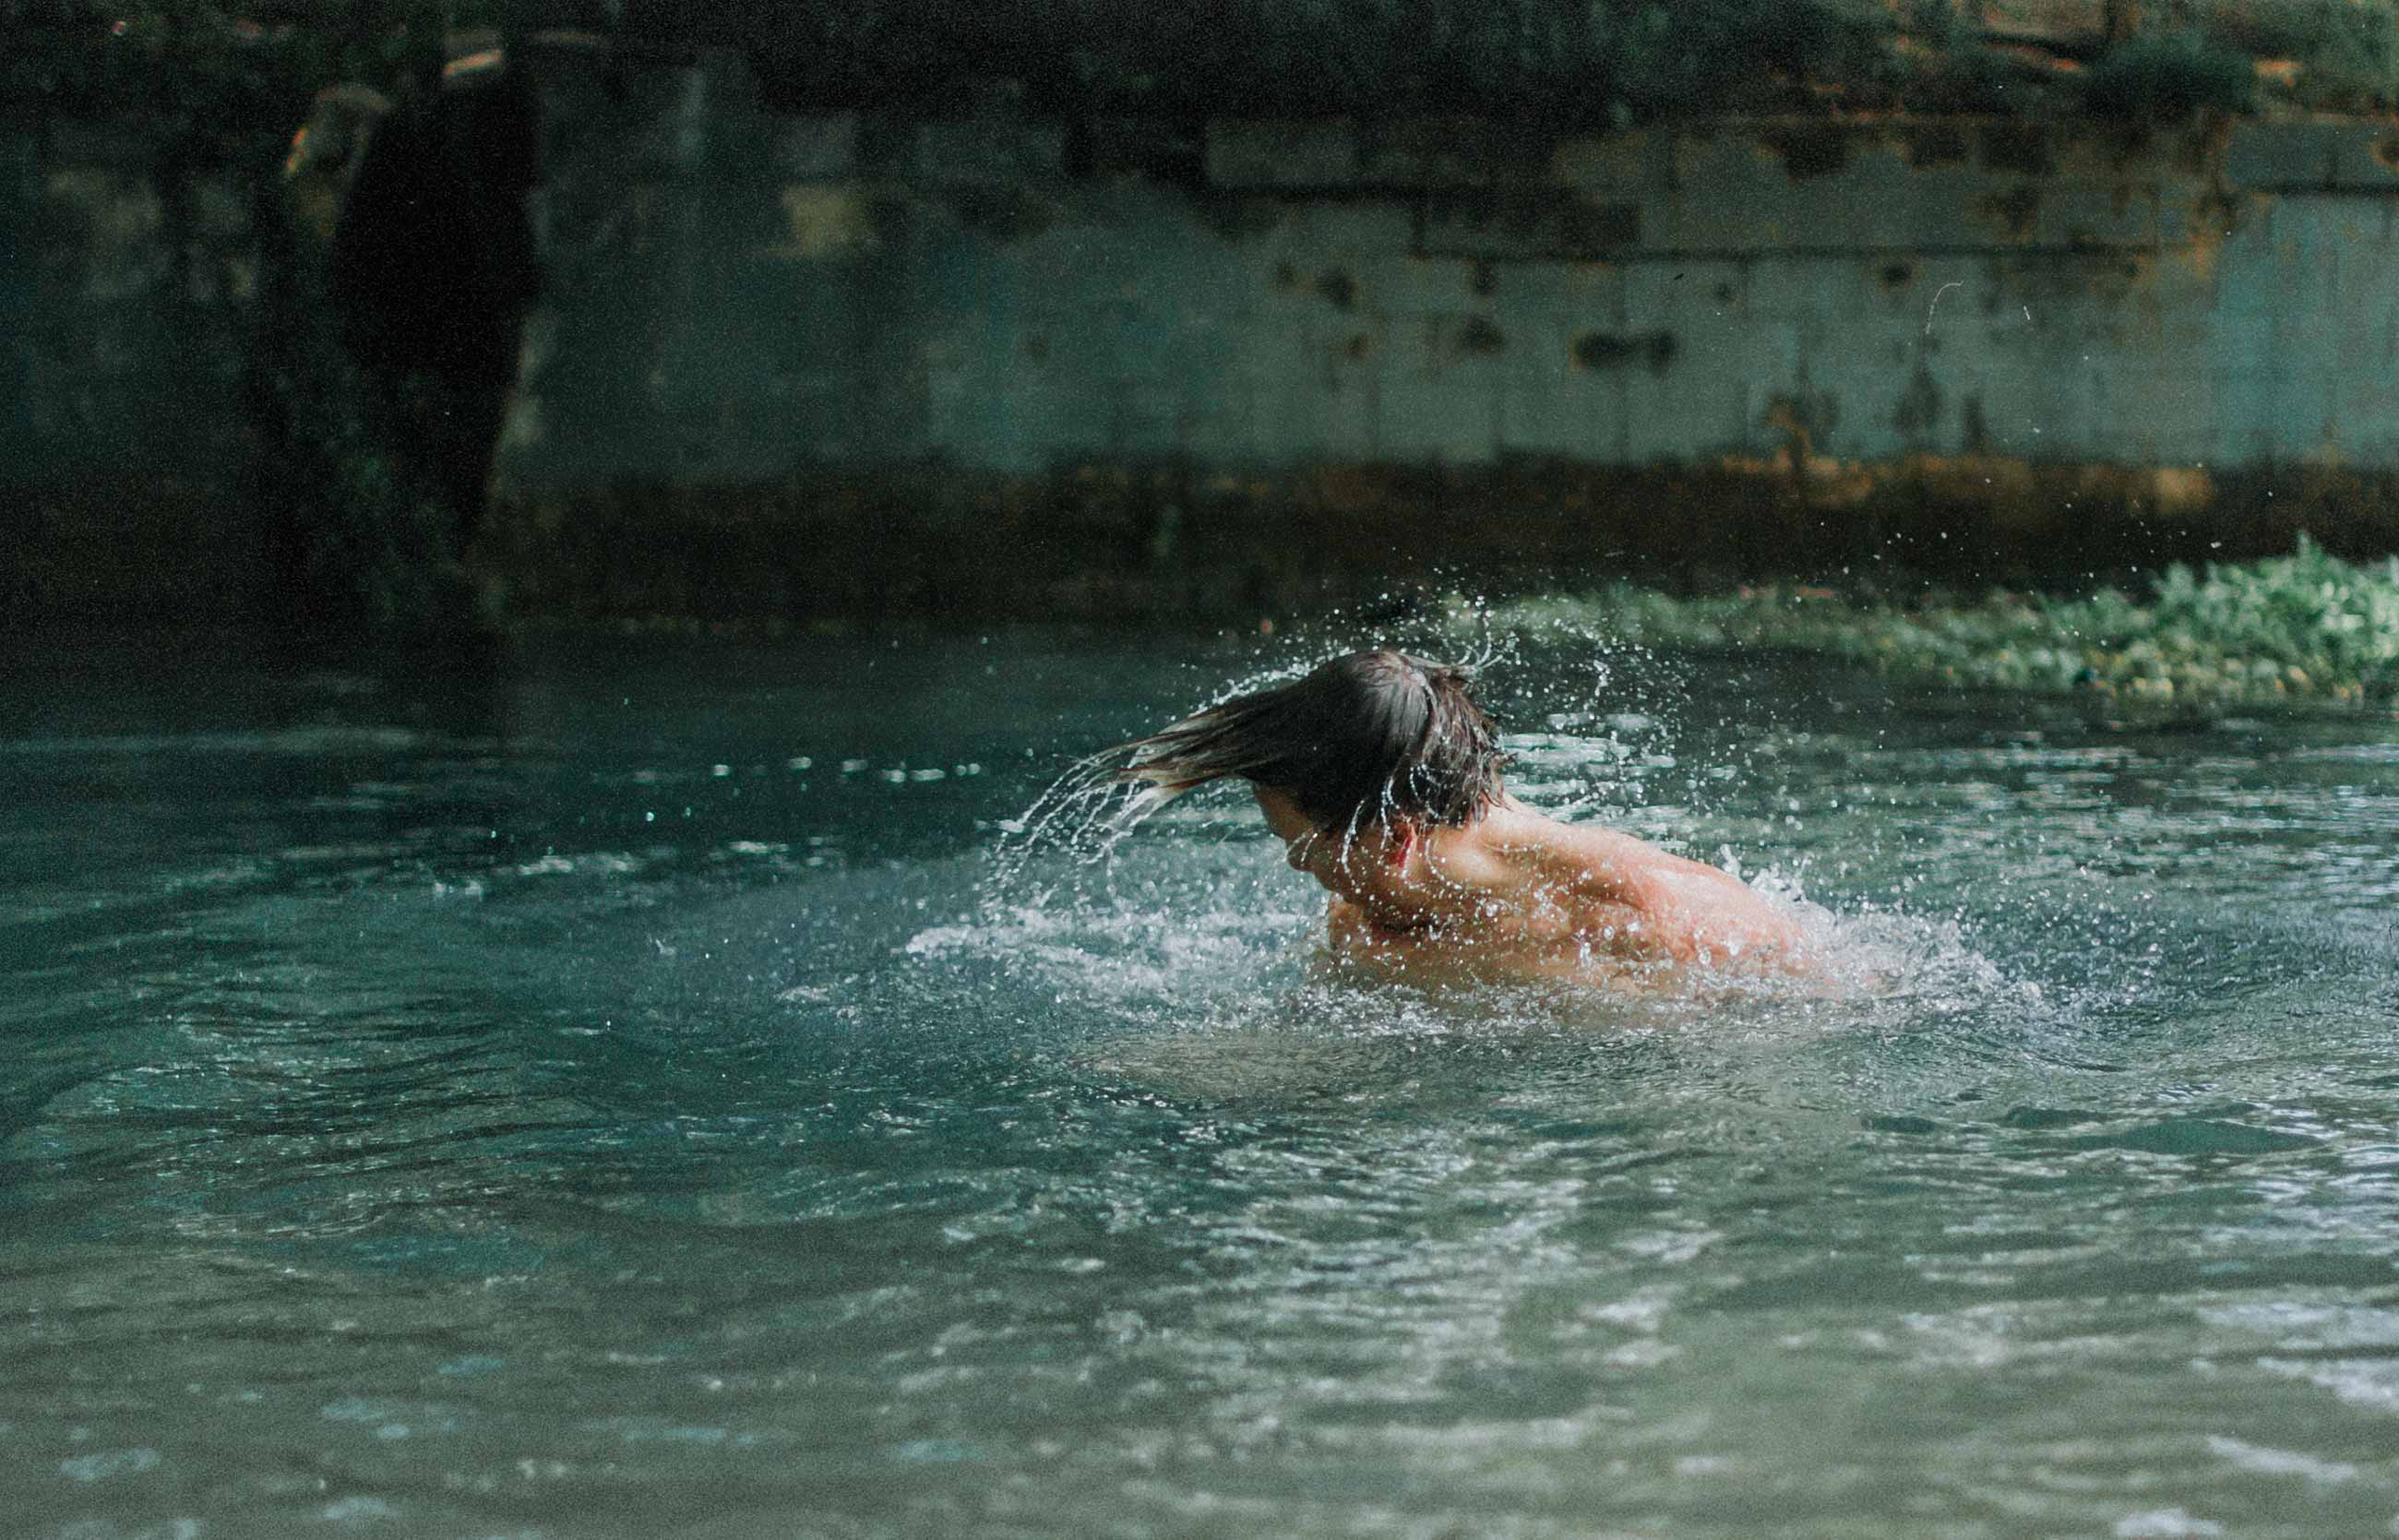 Swimming is a great way to improve your cardio. Bonus points if you can do it outside.